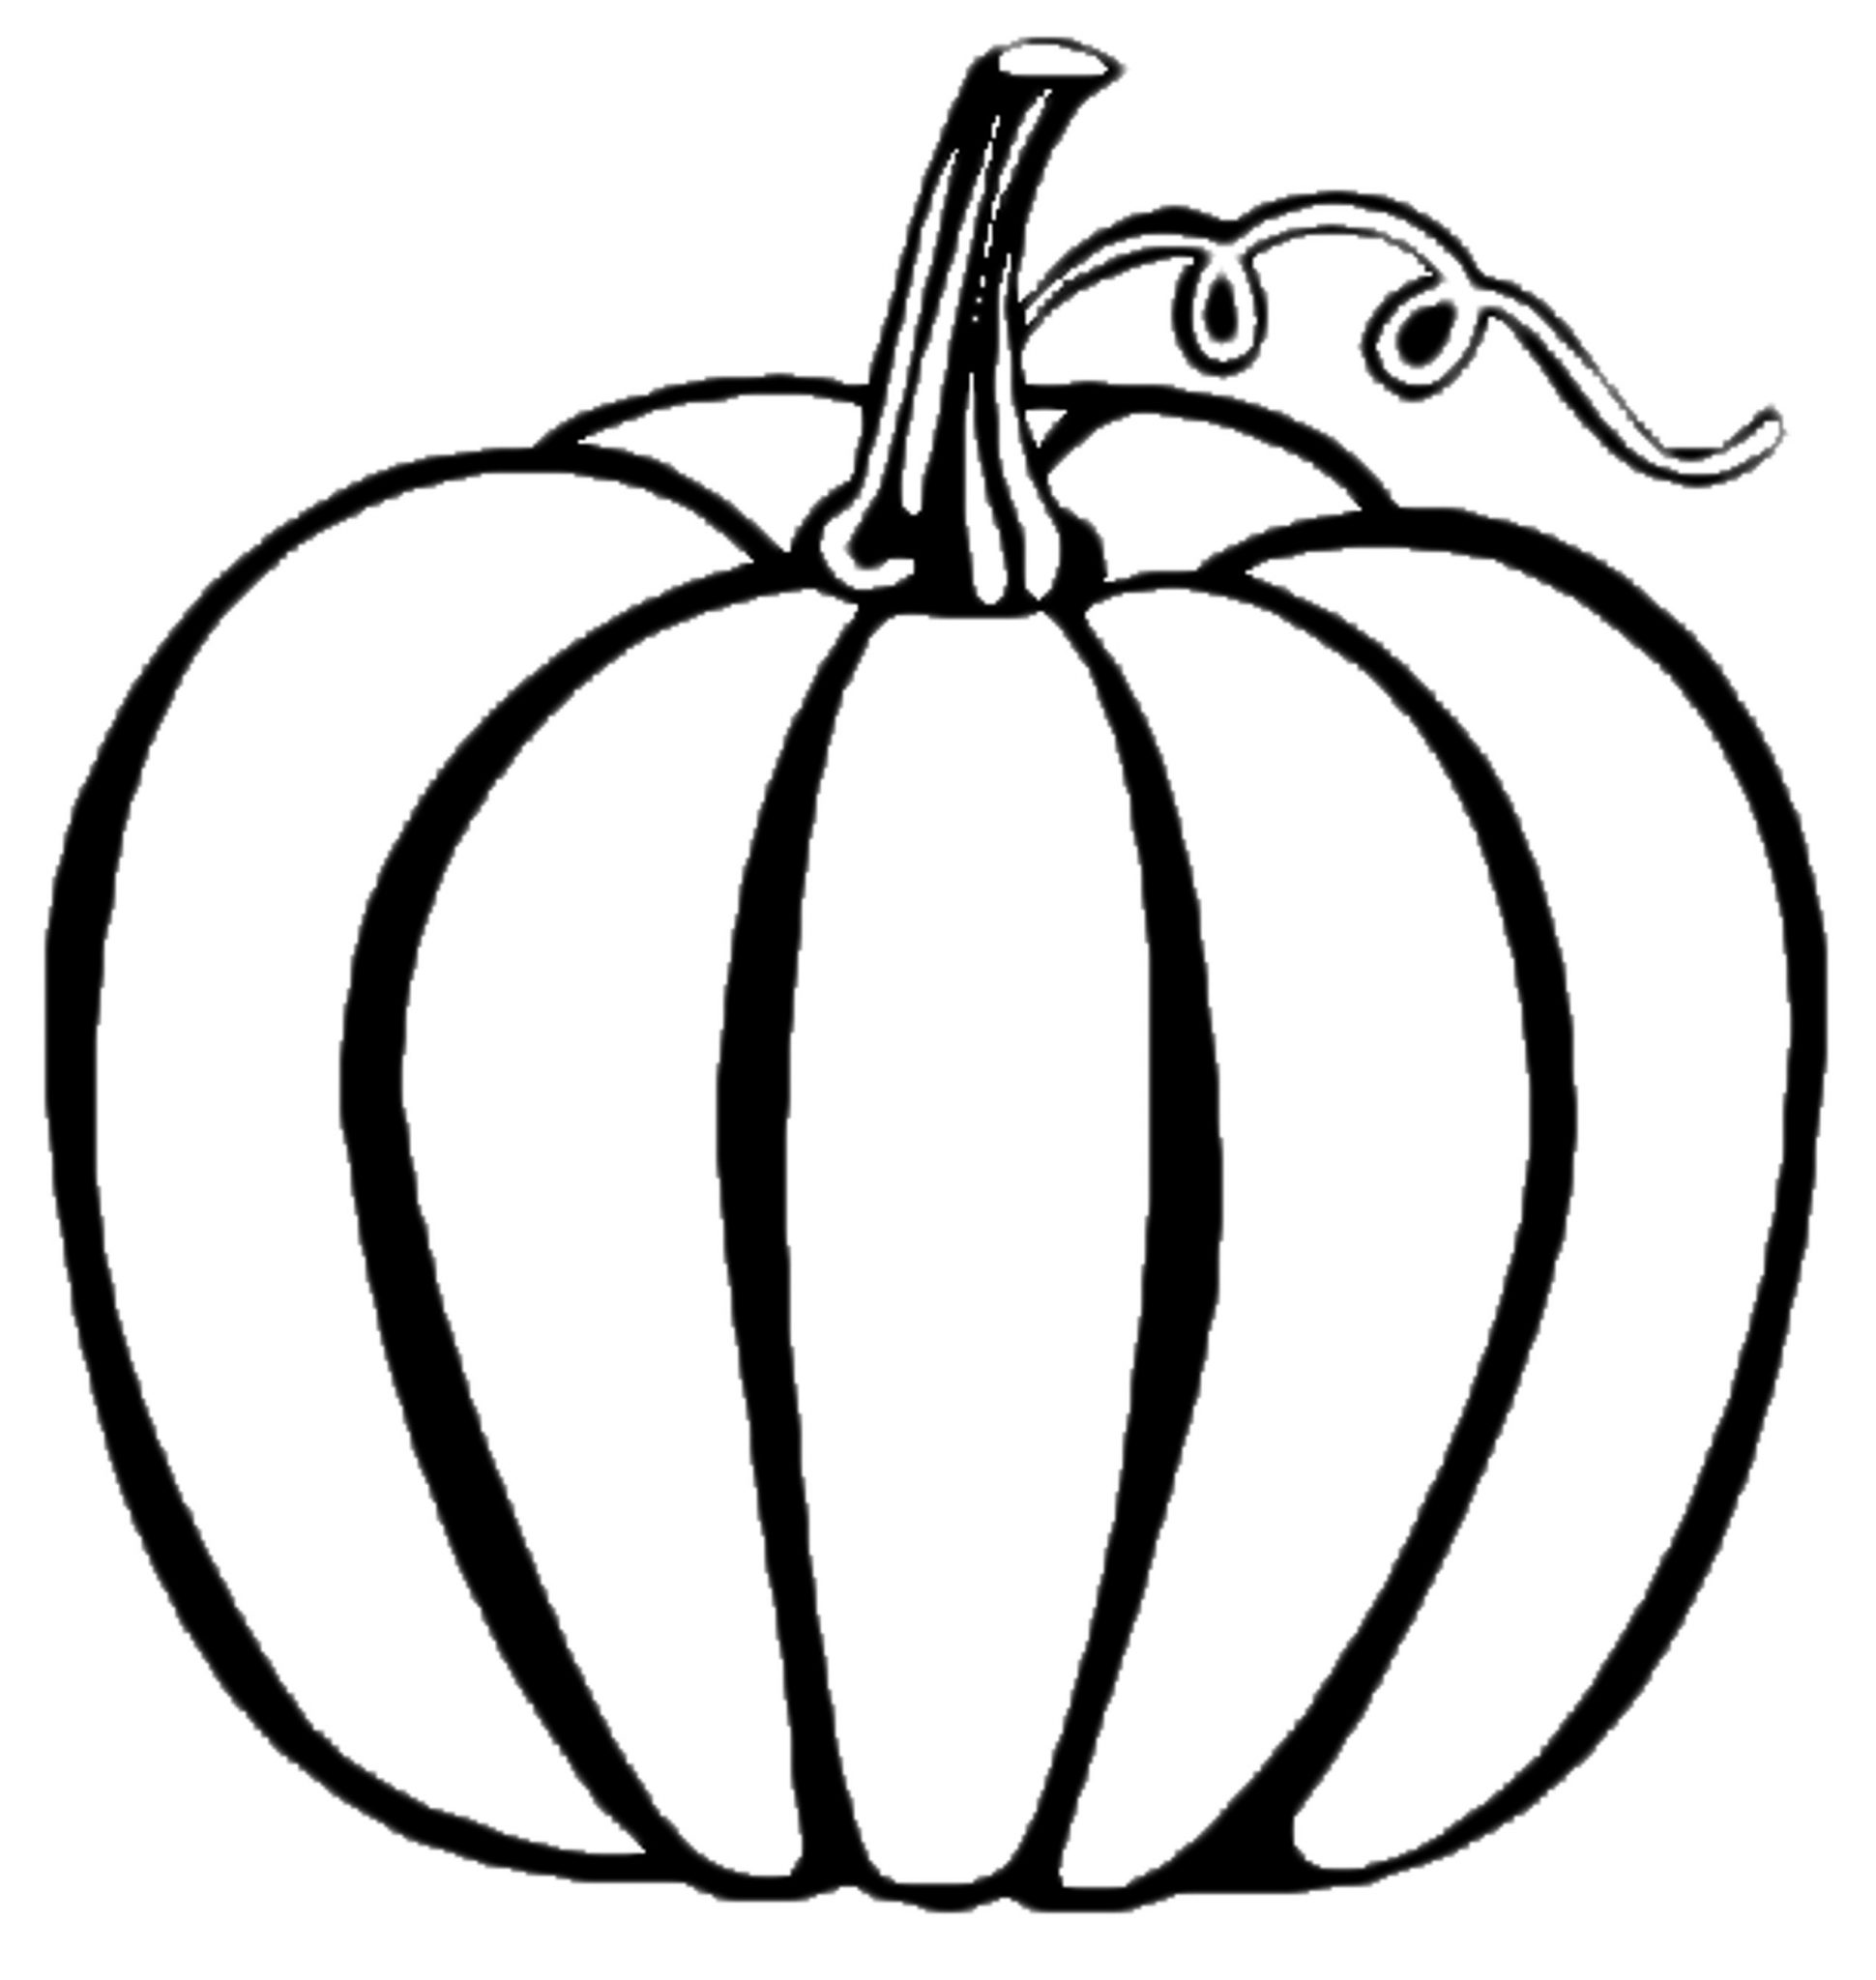 pumpking coloring pages print download pumpkin coloring pages and benefits of pumpking pages coloring